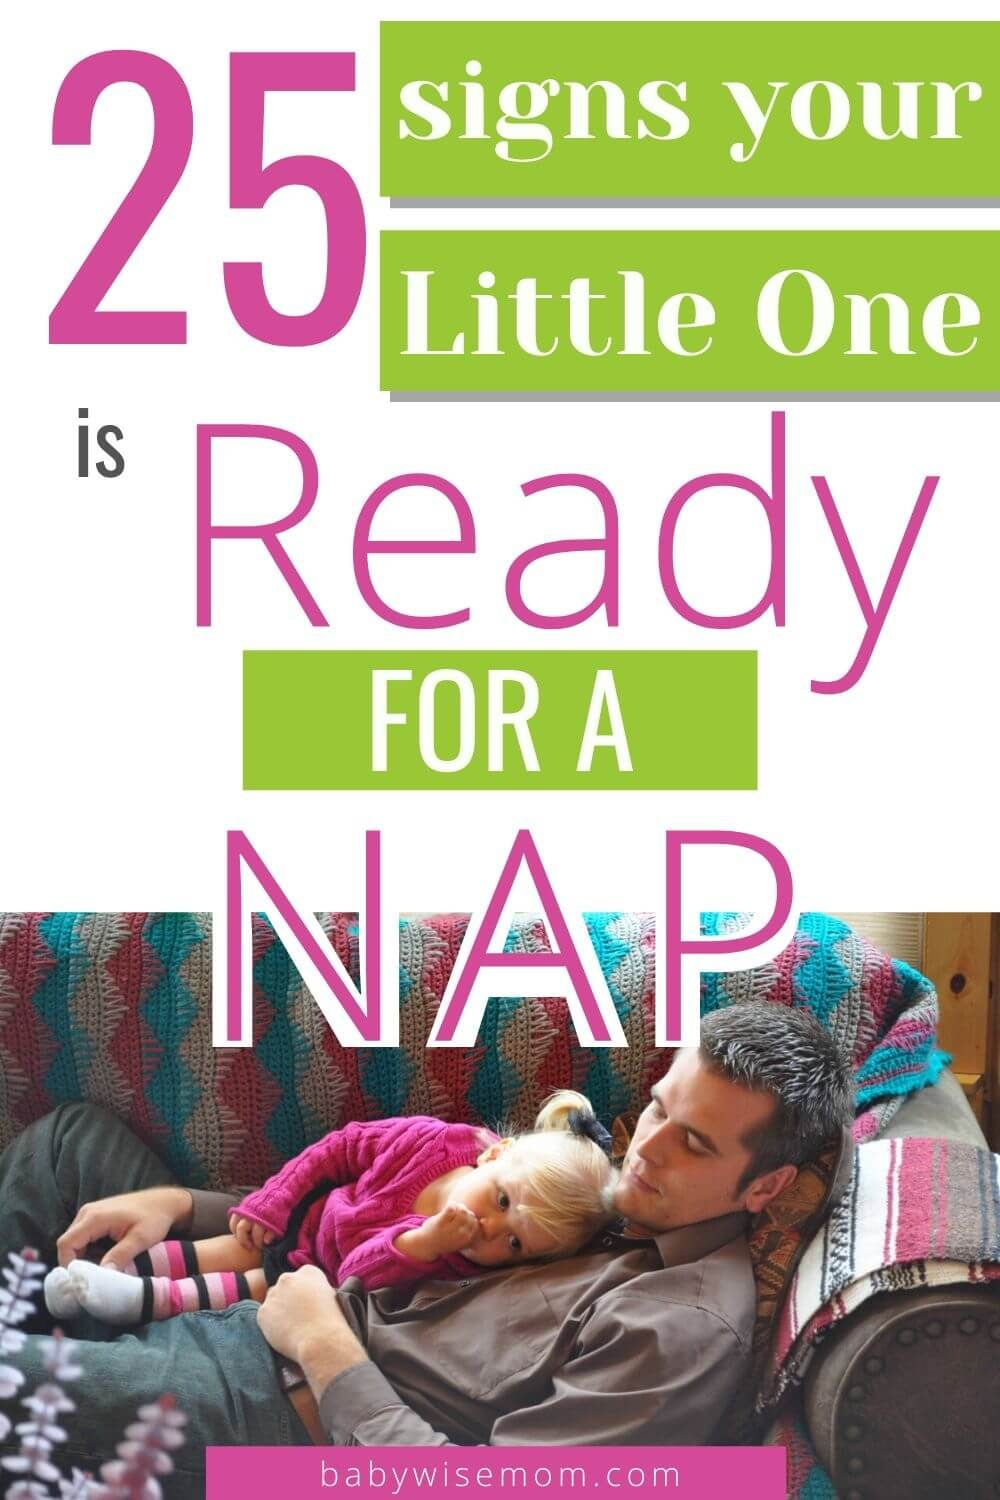 Baby sleep cues and how to get it right for your baby